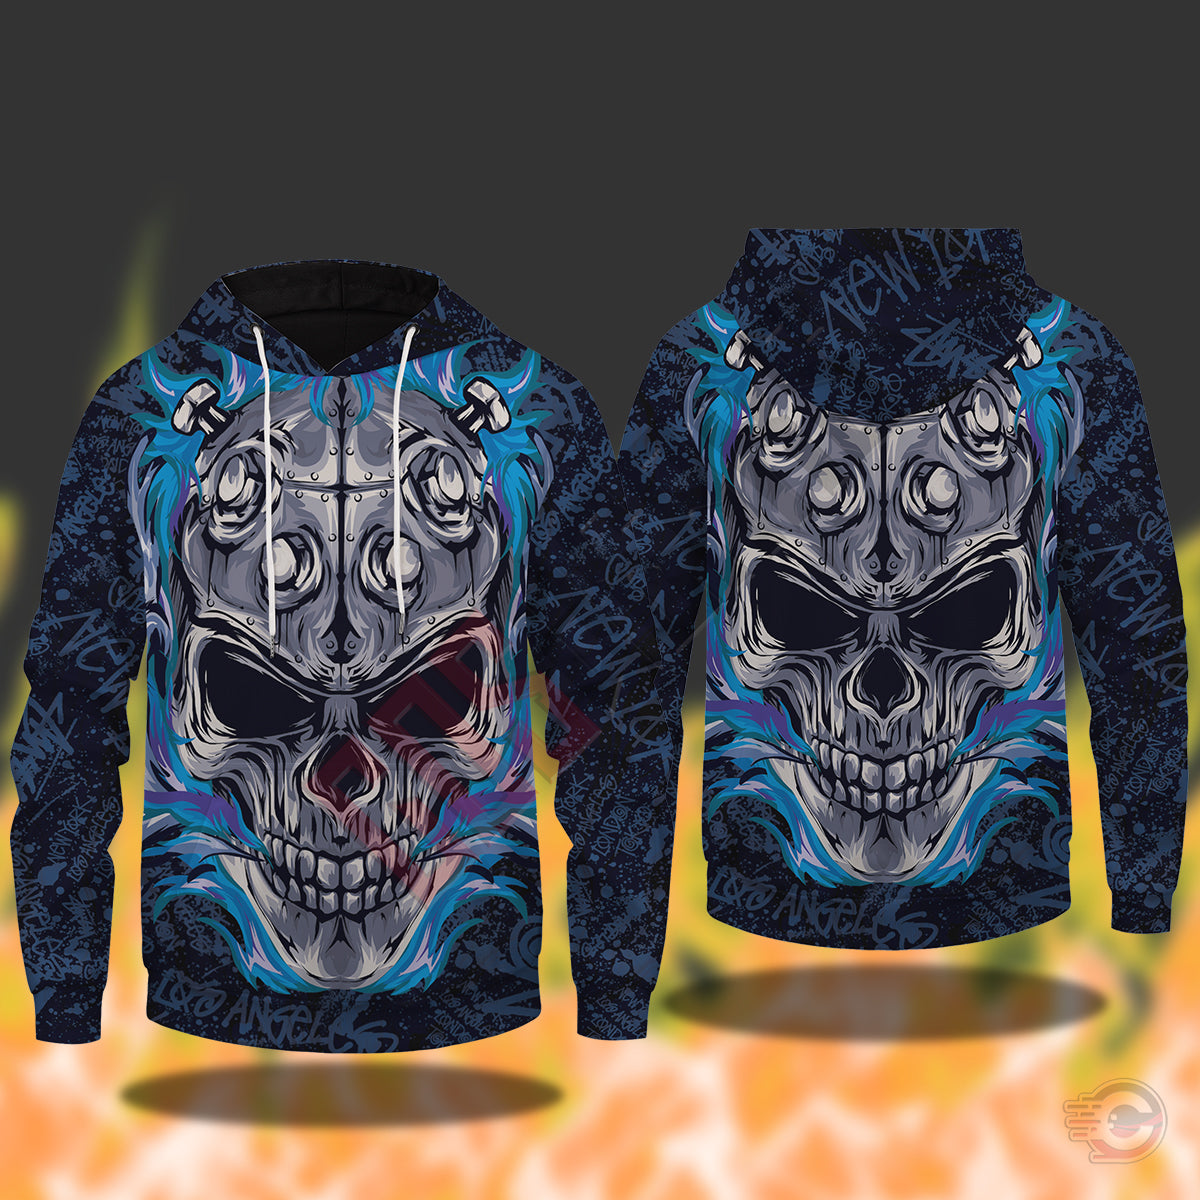 Original Designs : Flaming Skull Pullover Hoodie